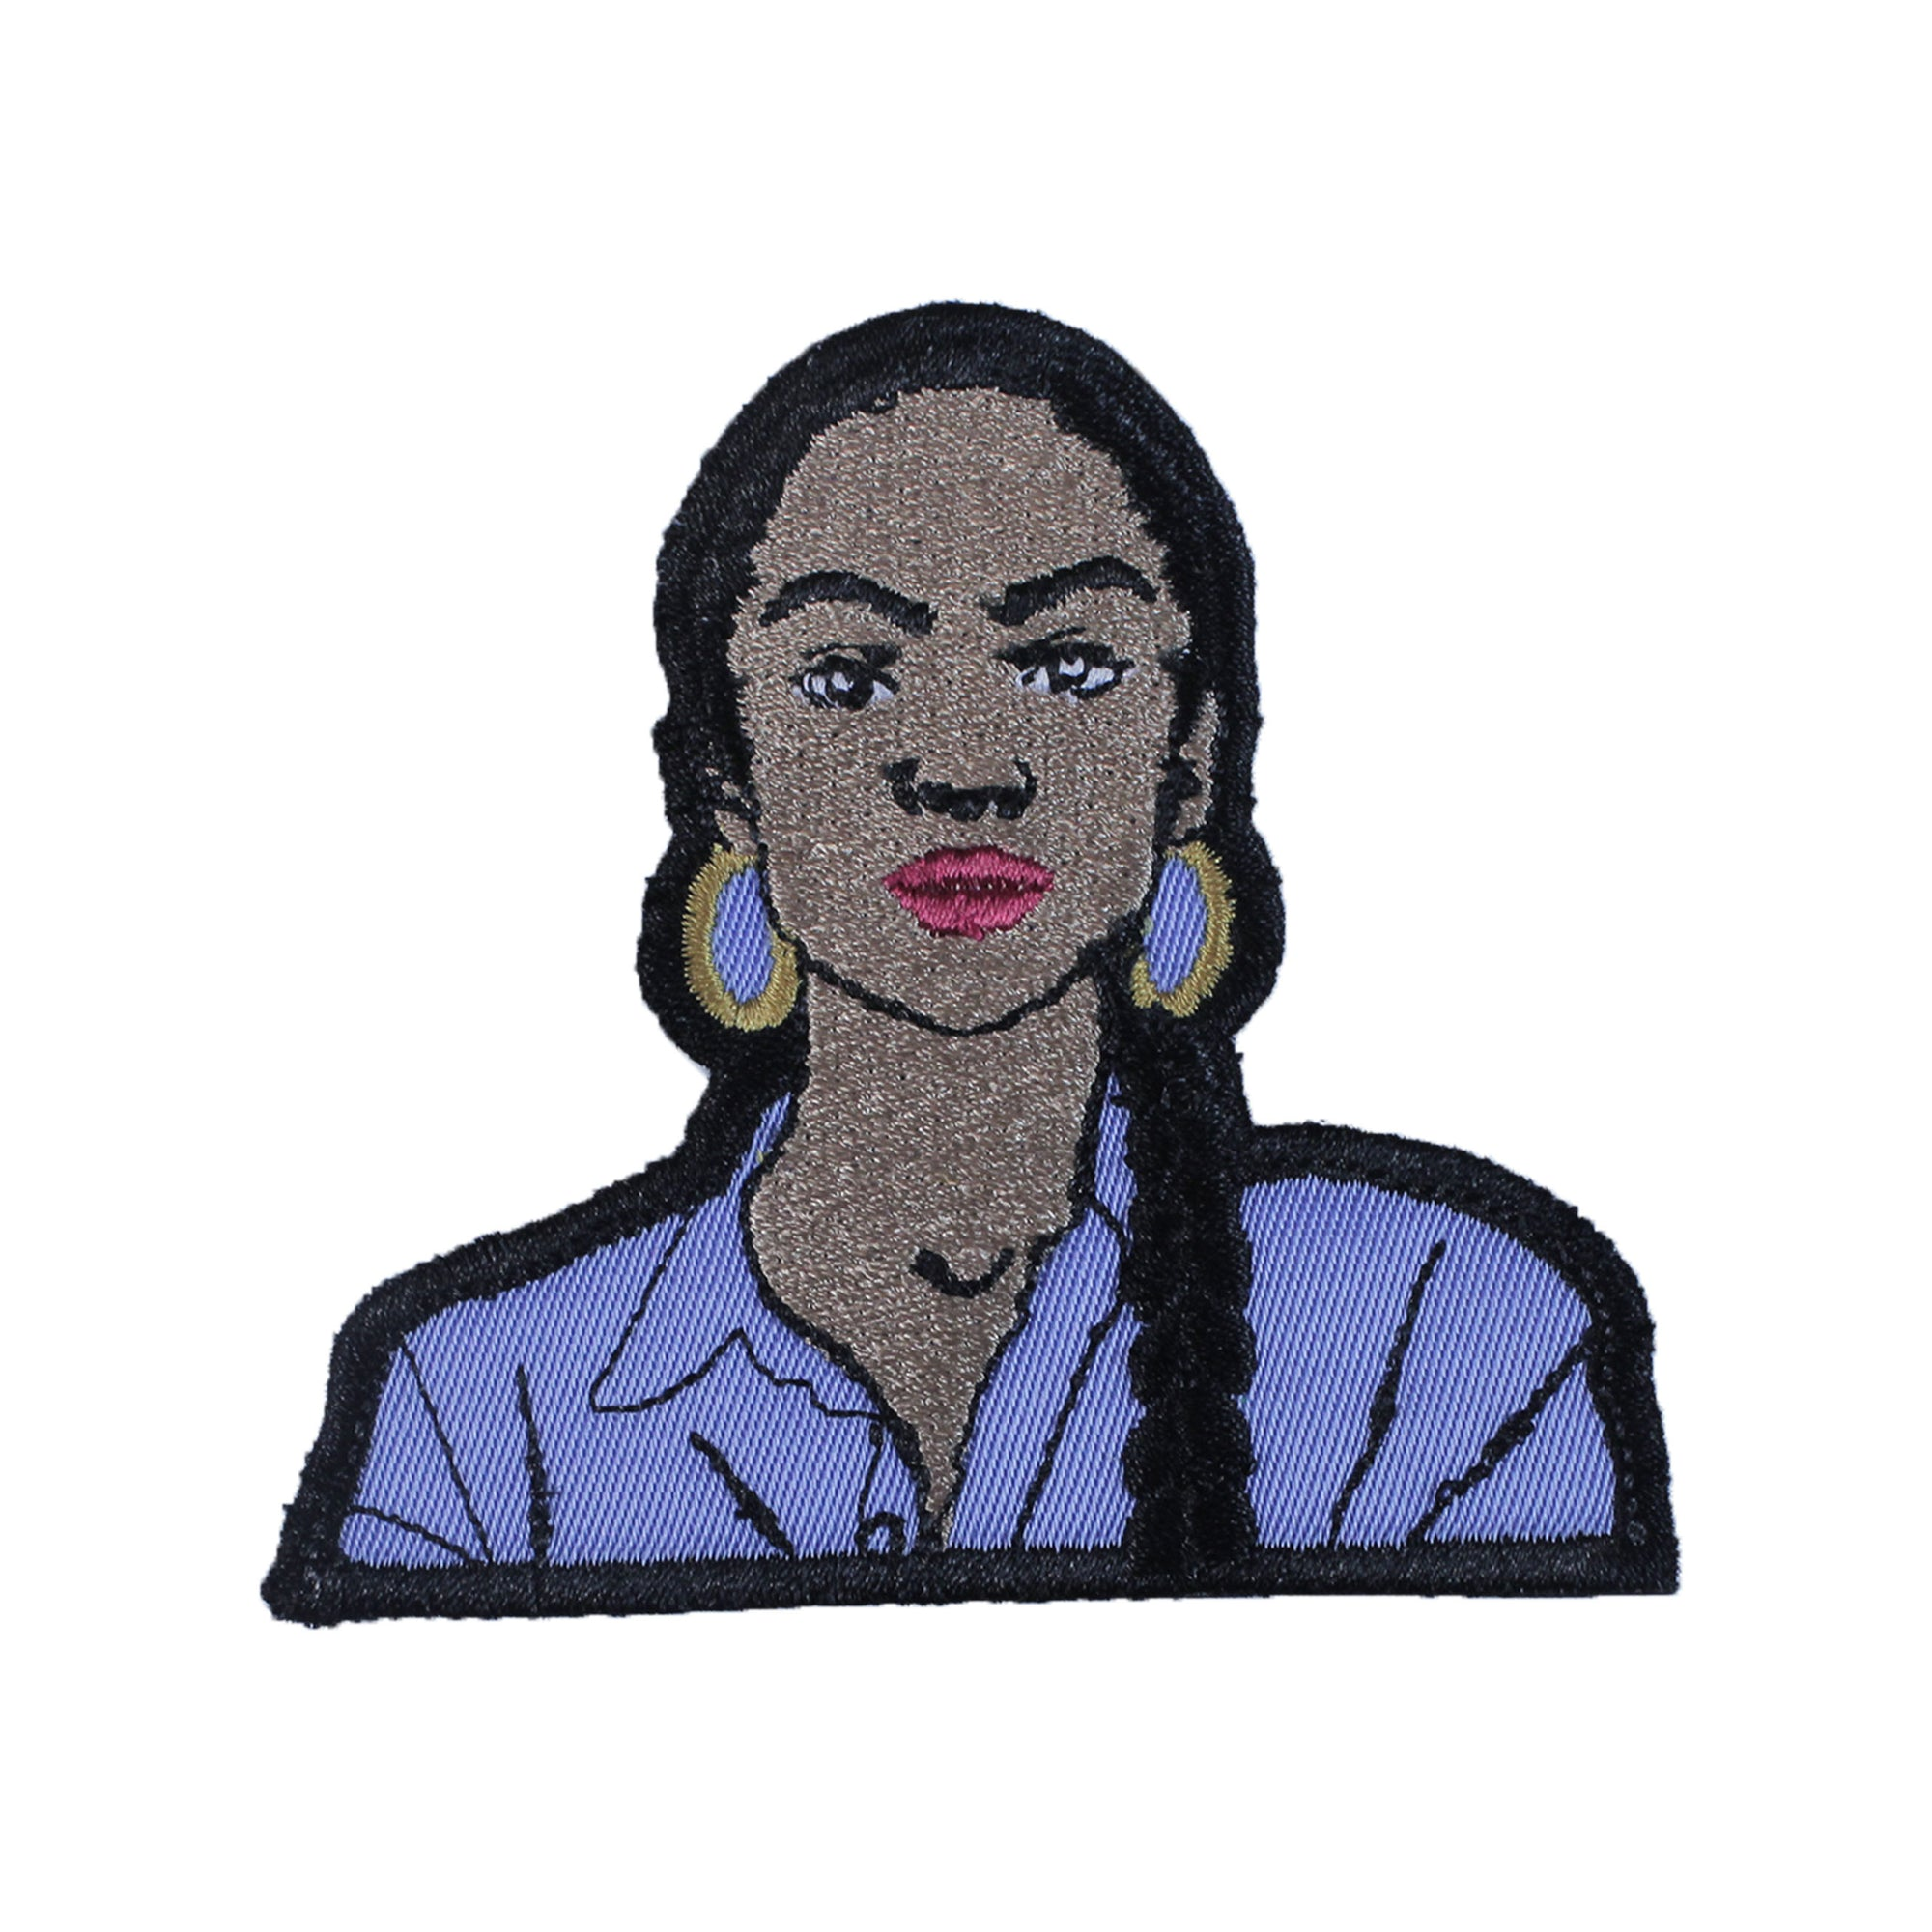 Sade Patch - The Carter Brand - Black By Popular Demand - Rooting For Everybody Black - Black Pride Apparel